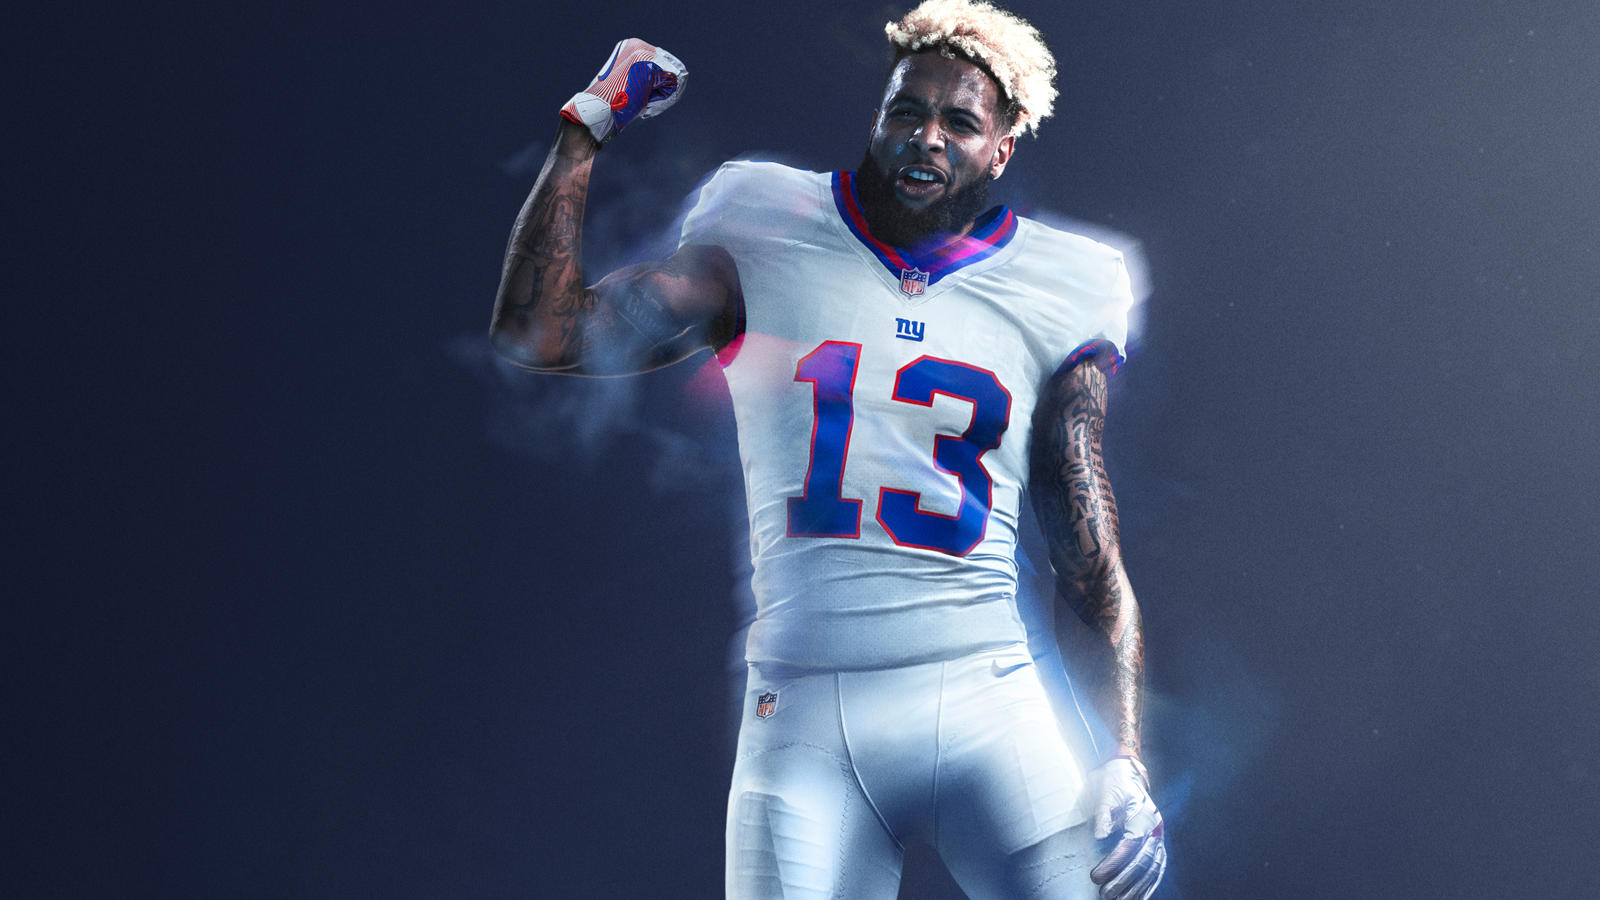 Nike And Nfl Light Up Thursday Night Football Nike News